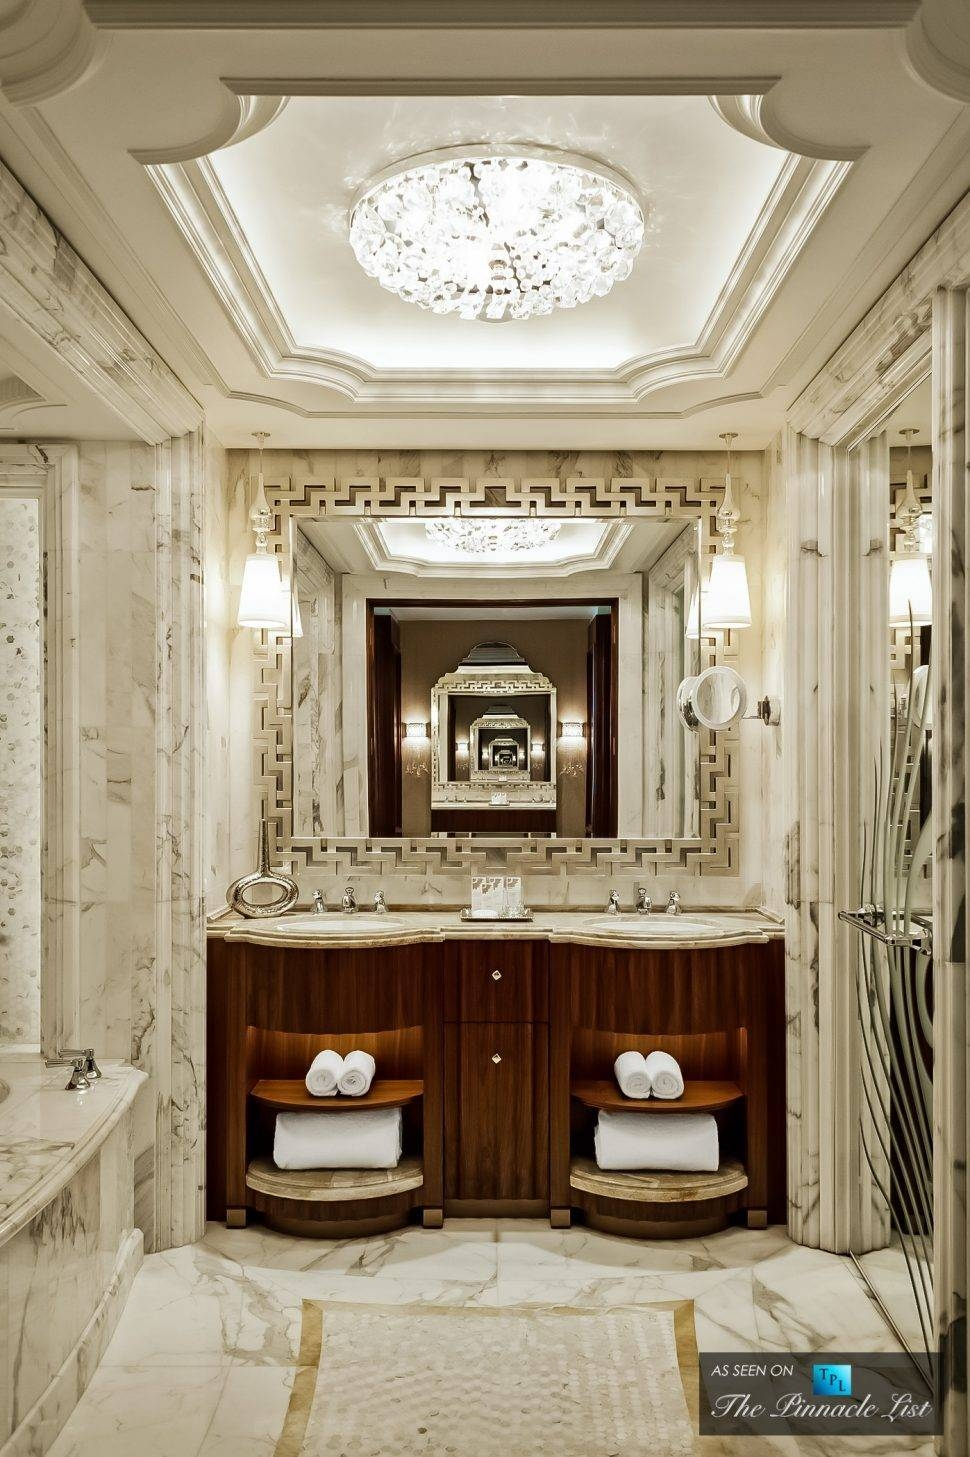 Bathroom Cabinets : Full Wall Mirrors Where To Buy Mirrors Wooden in Where to Buy Vintage Mirrors (Image 2 of 15)